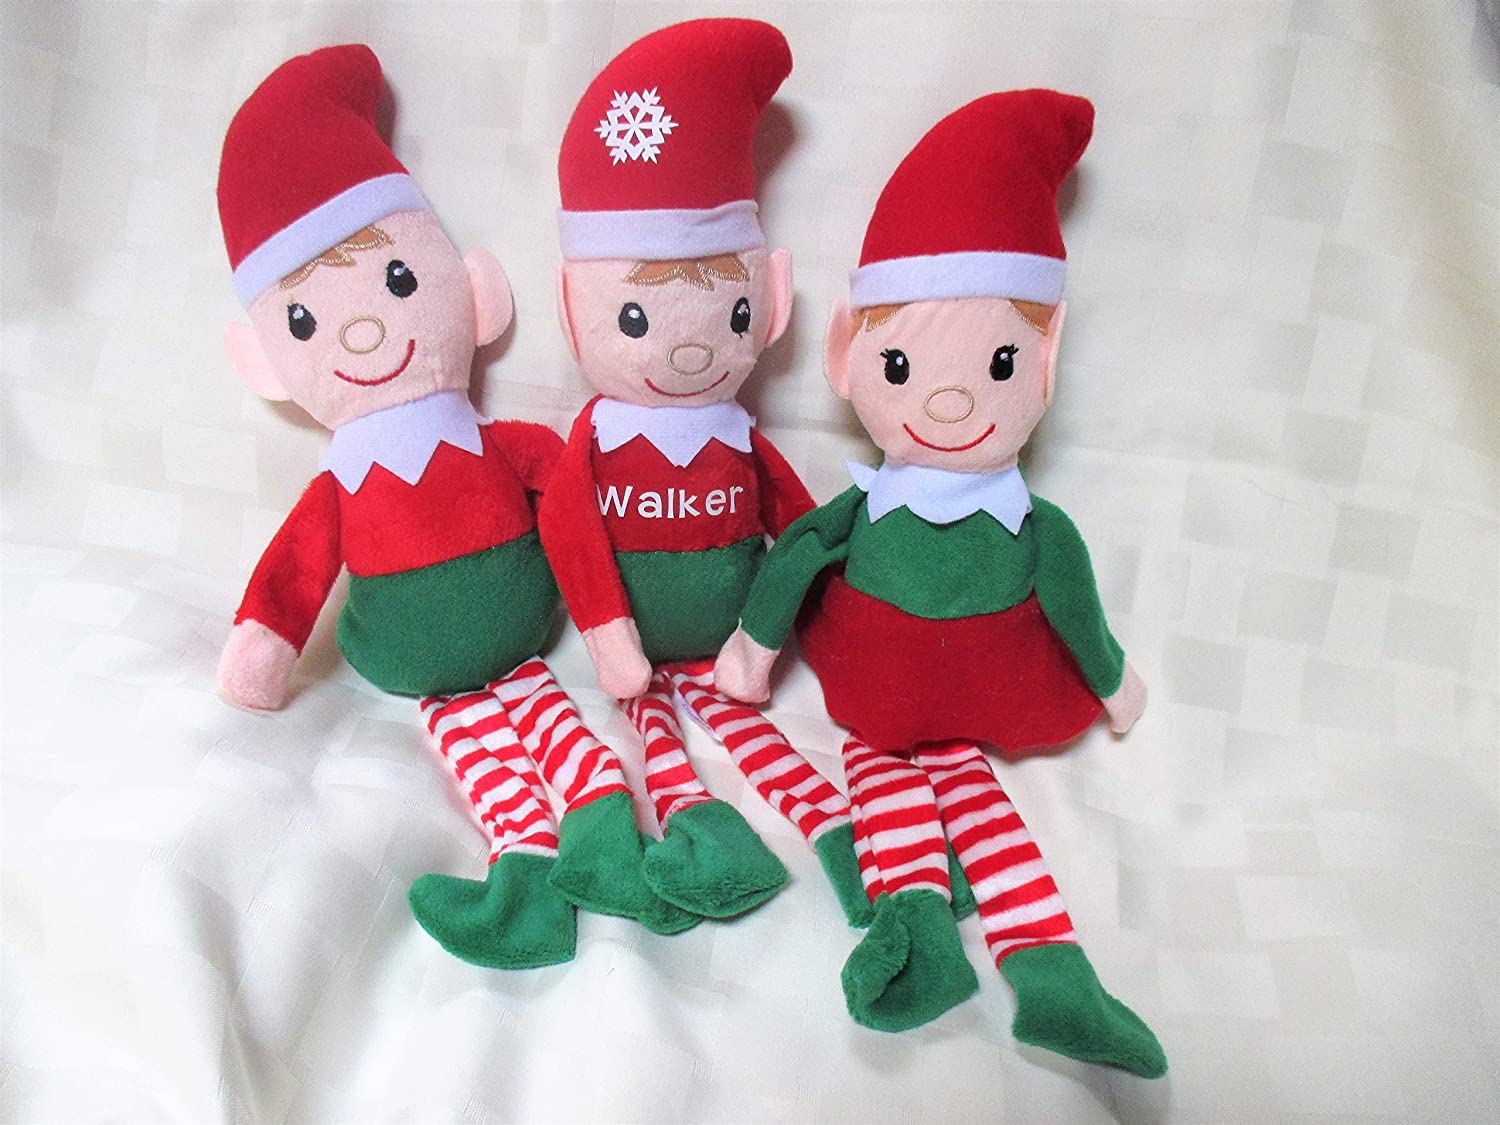 Personalized elf with Elf cam ornament